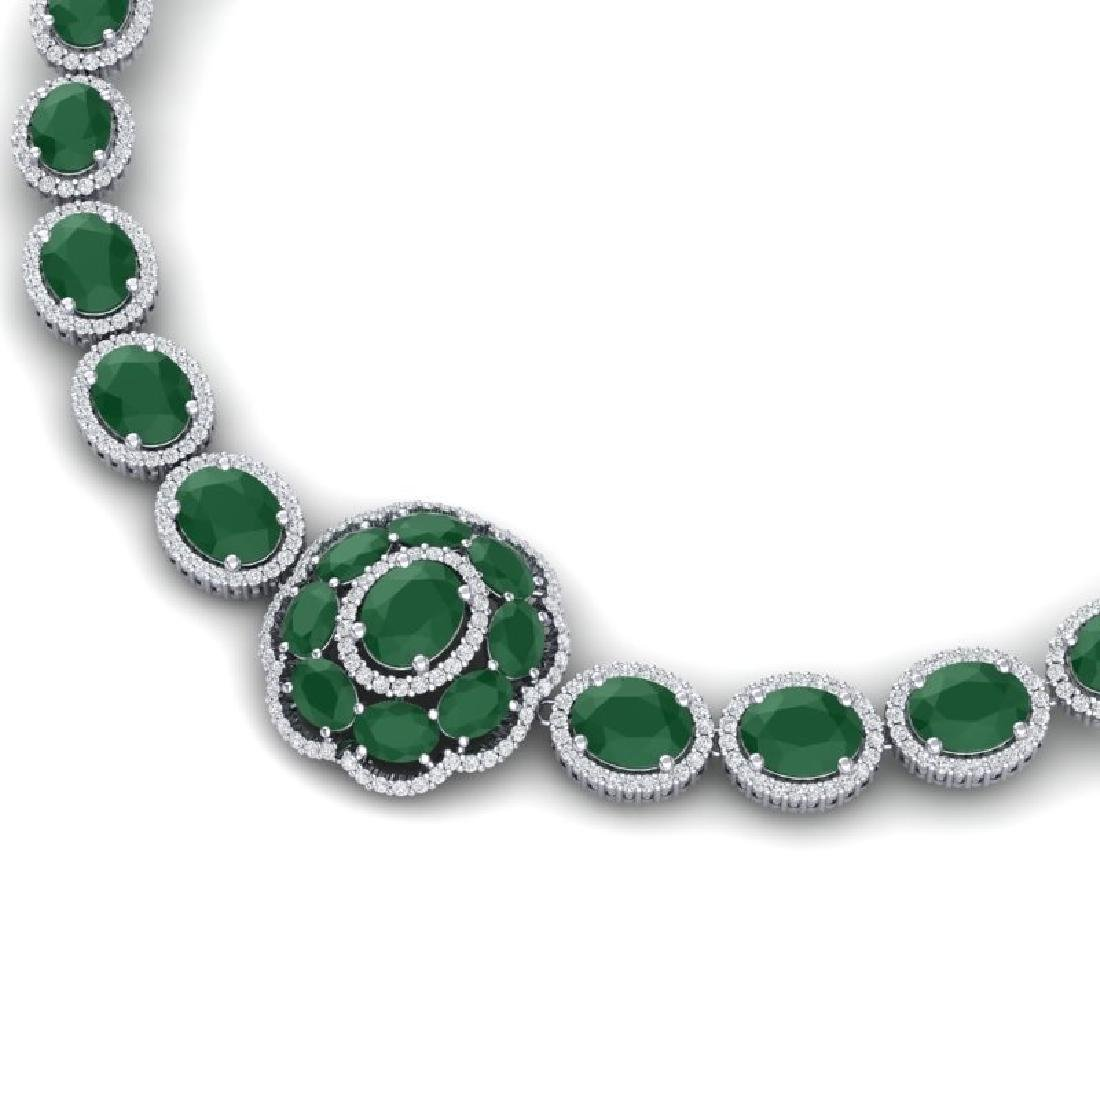 58.33 CTW Royalty Emerald & VS Diamond Necklace 18K